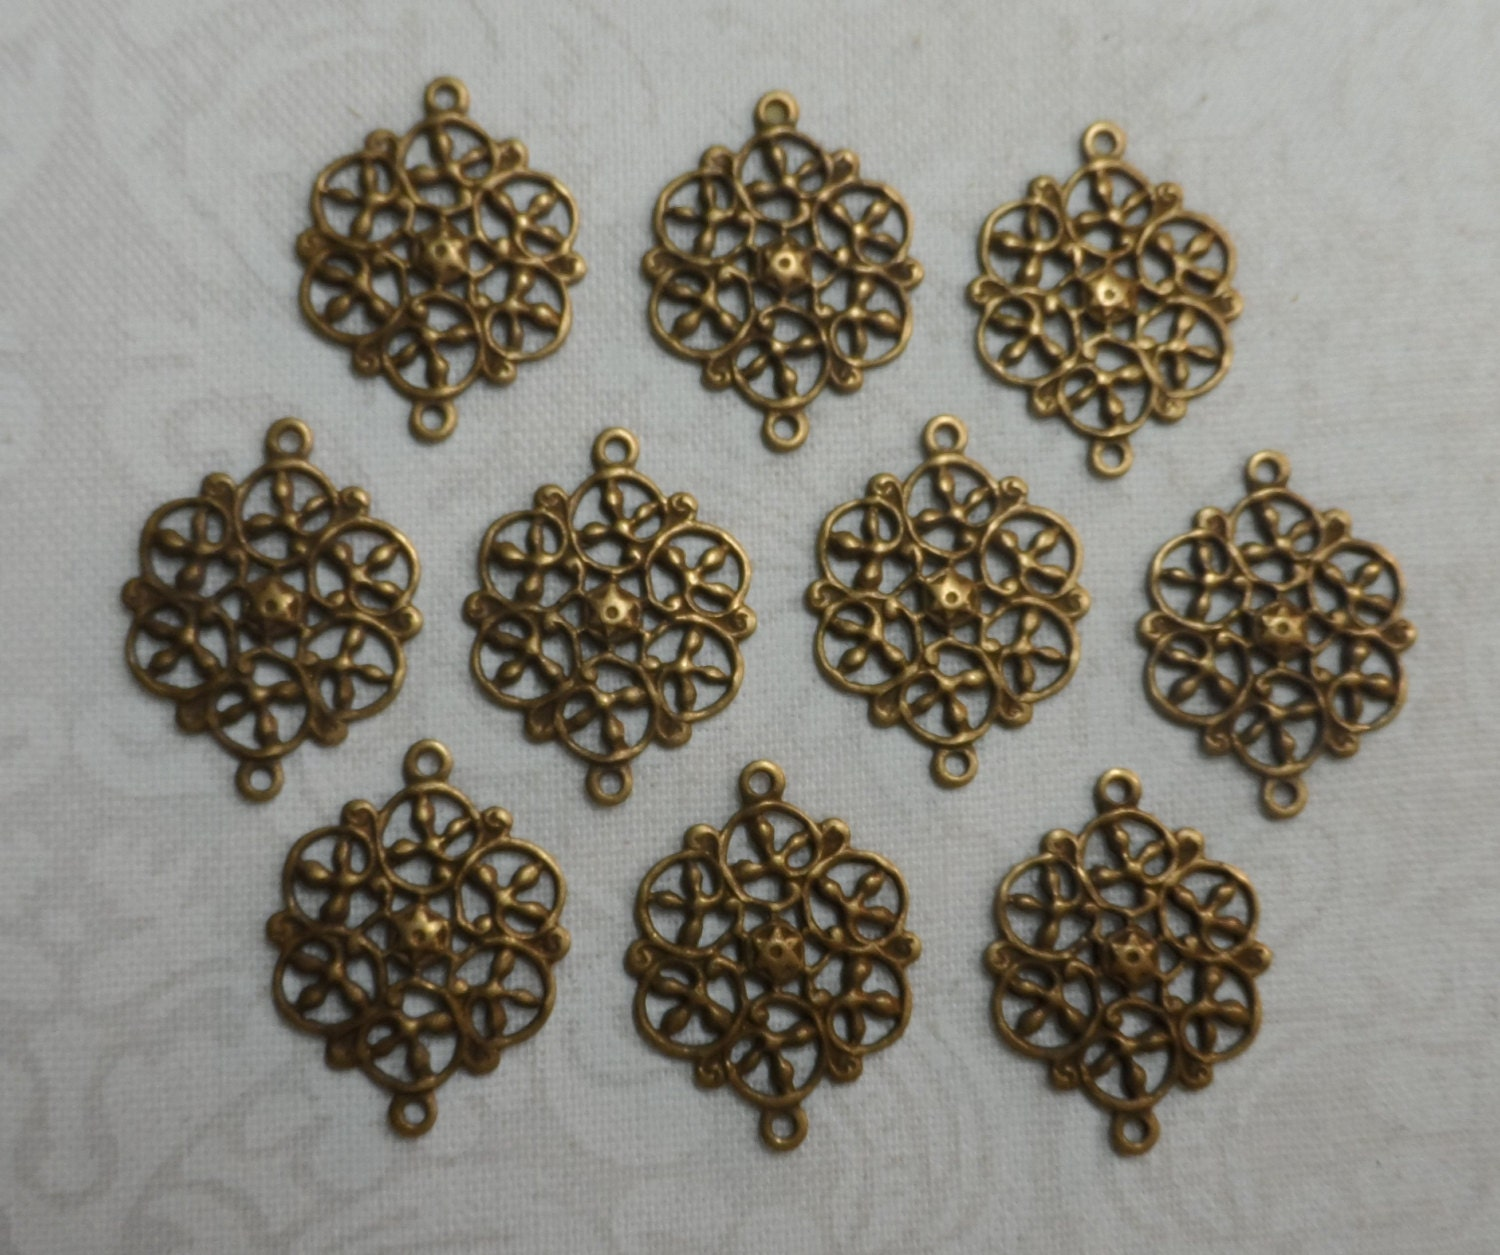 Vintage gold plate brass filigree connectors with rings